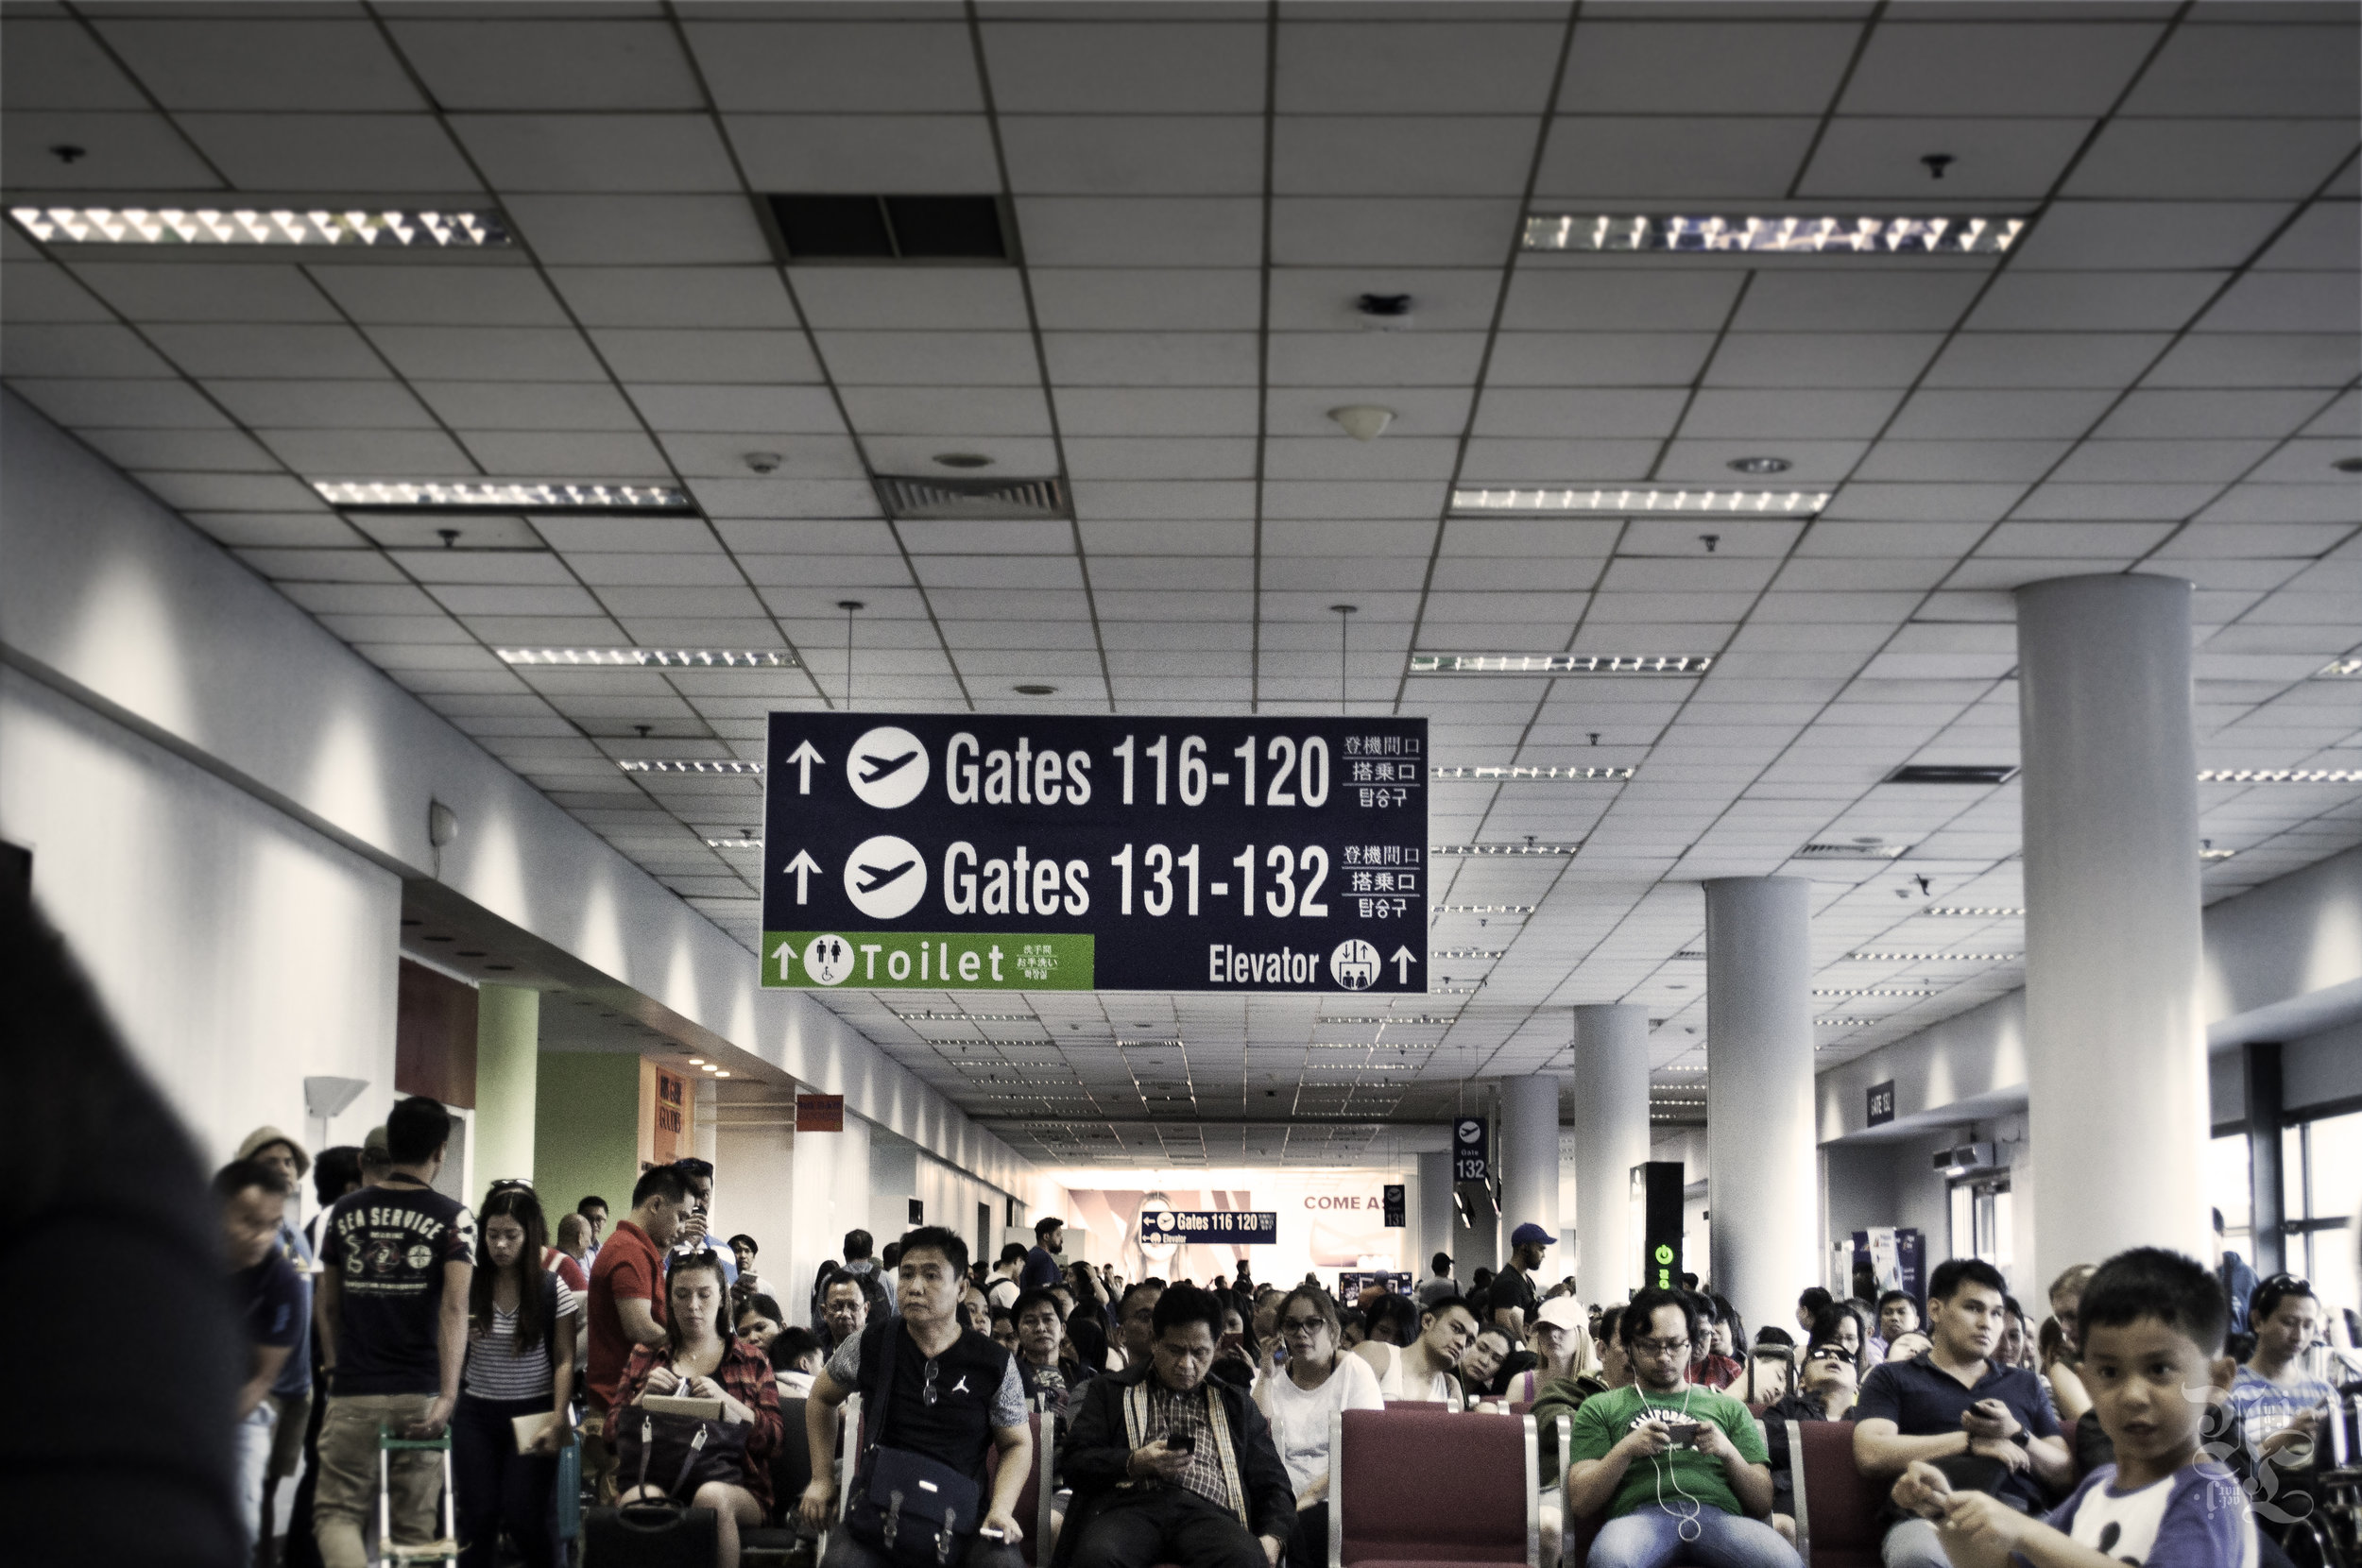 People crowding the NAIA domestic terminal after 4hr+ flight delays